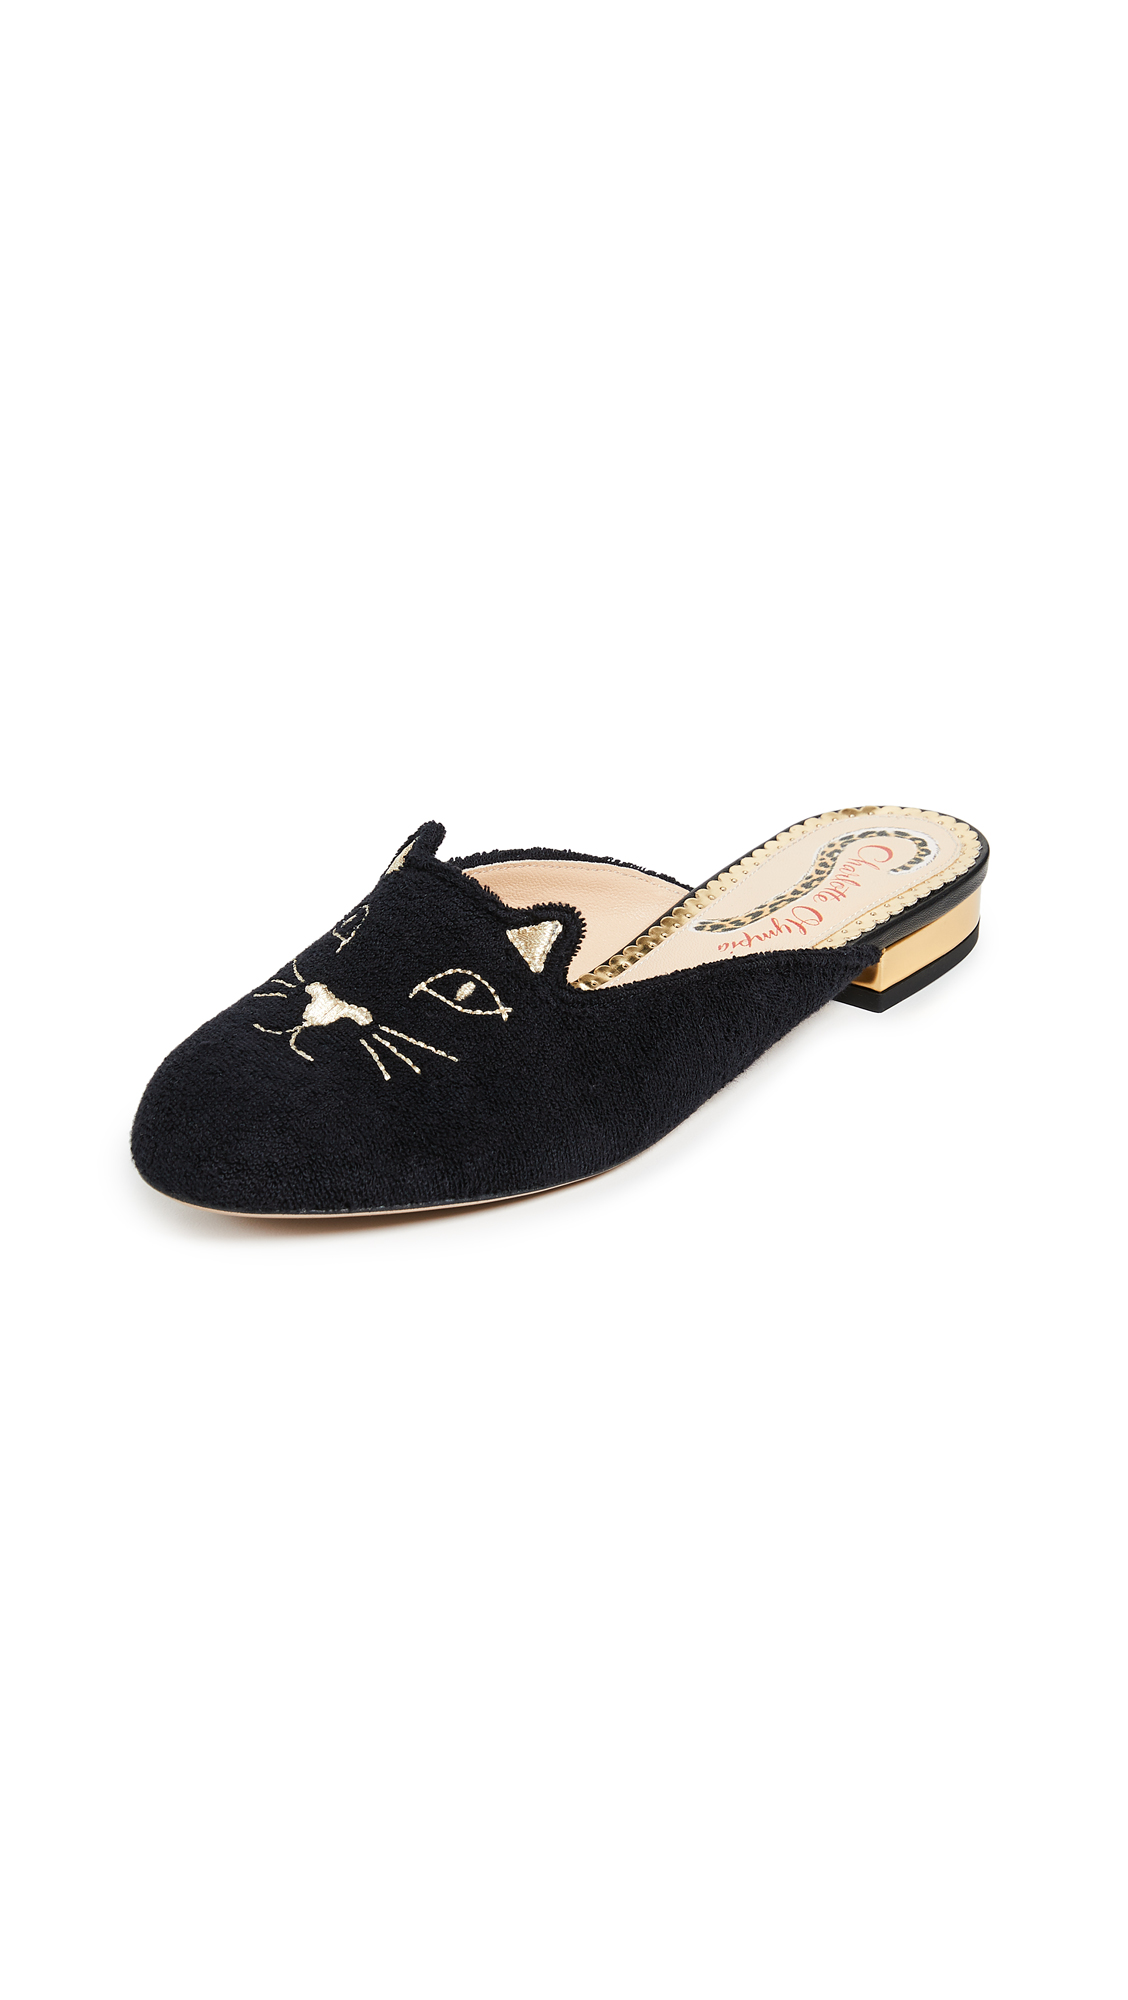 Buy Charlotte Olympia Kitty Slippers online, shop Charlotte Olympia